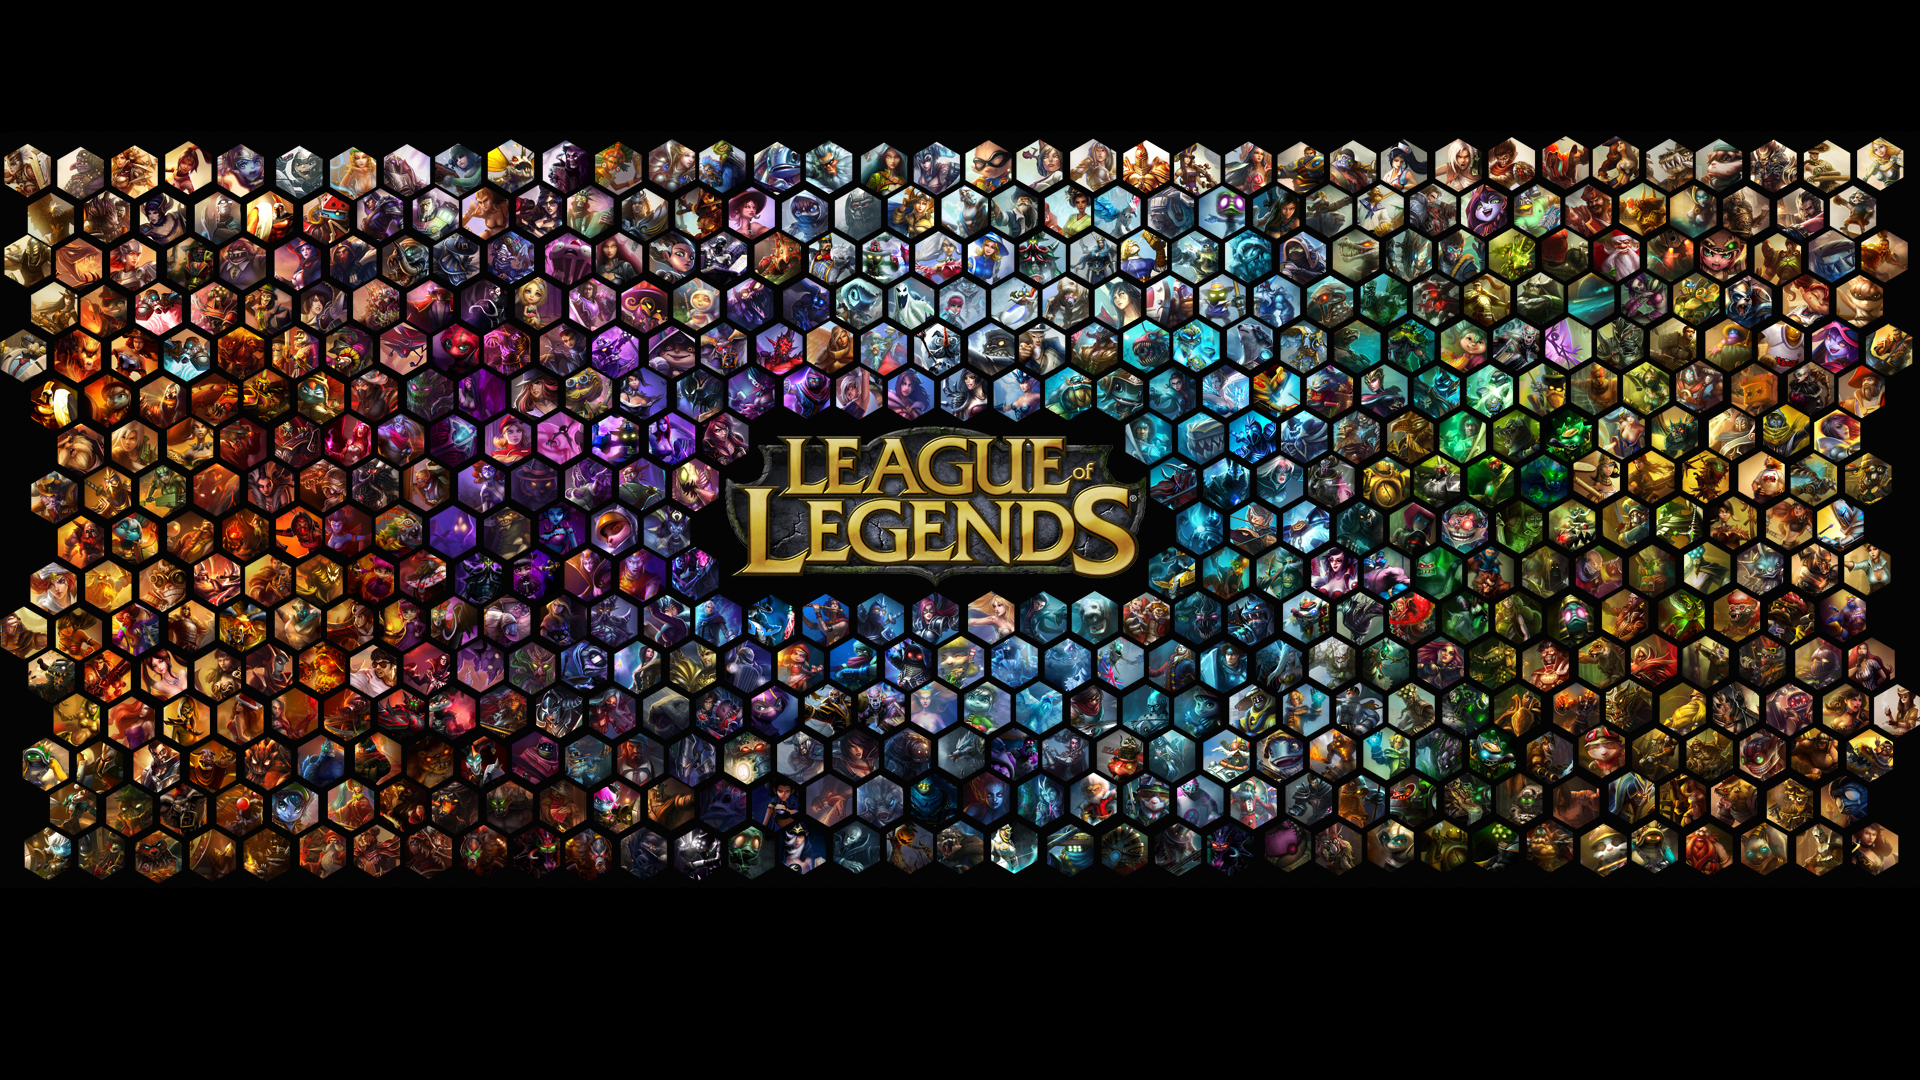 leaguef legends